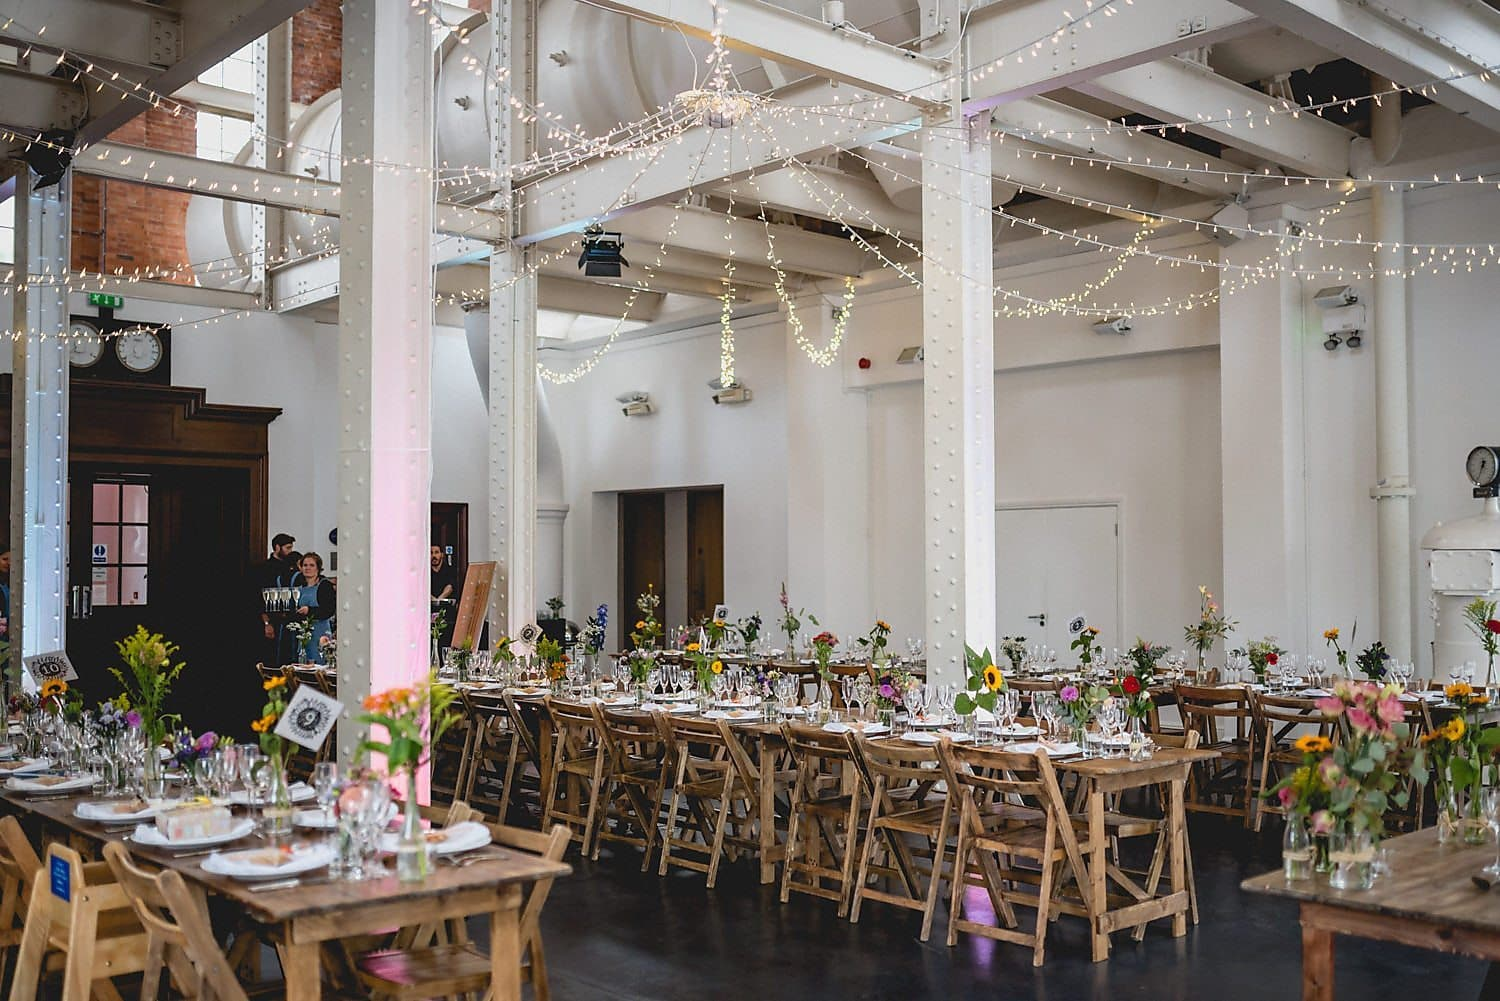 Start Wedding Planning for a Beautifully decorated West Reservoir Centre including festoon lights, trestle tables and lots of colourful flowers